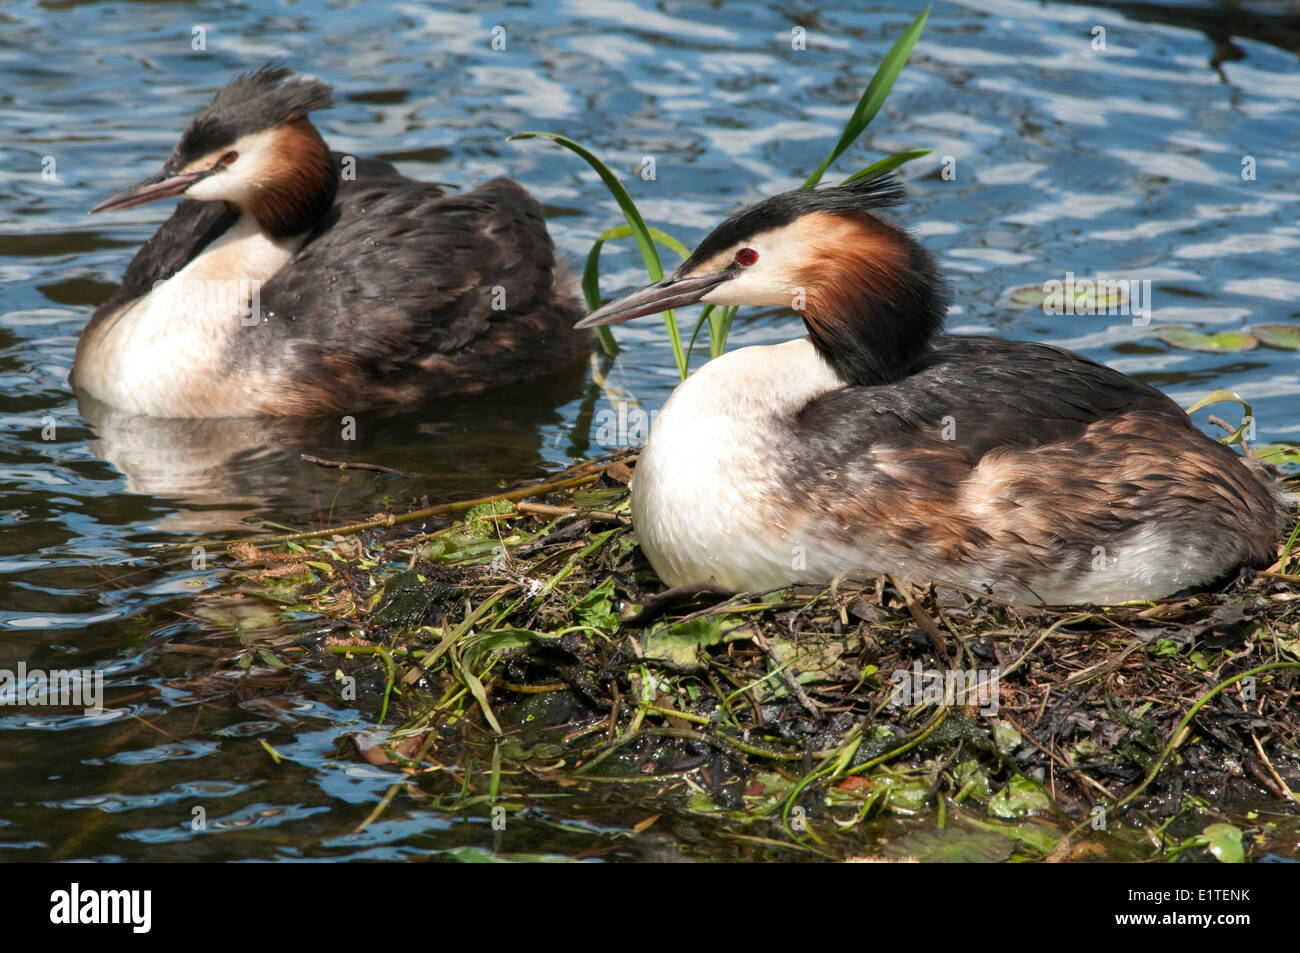 A couple Great Crested Grebes on their nest - Stock Image